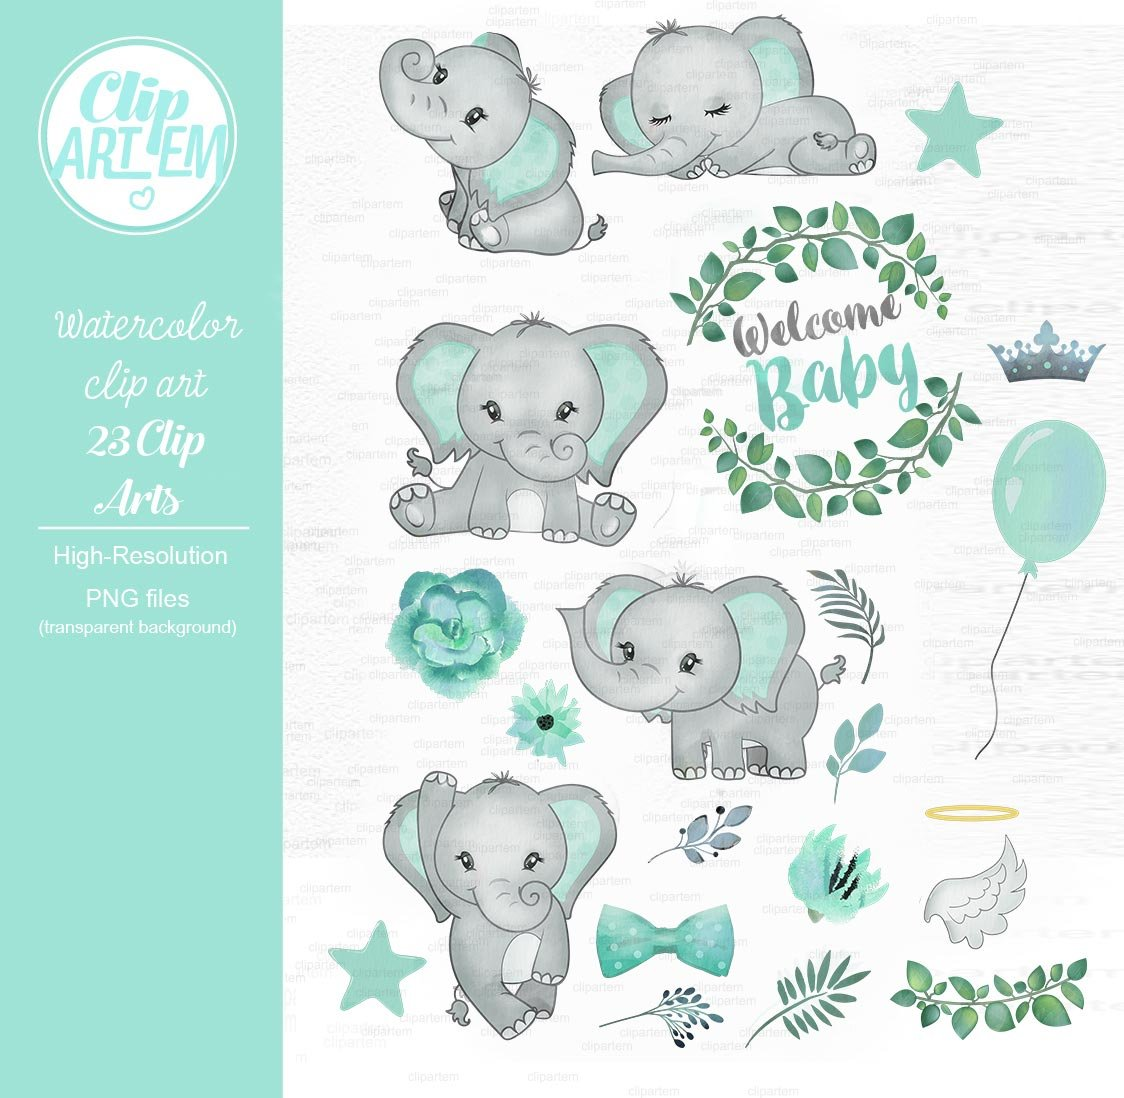 Baby elephant watercolor clipart ~ Illustrations ...